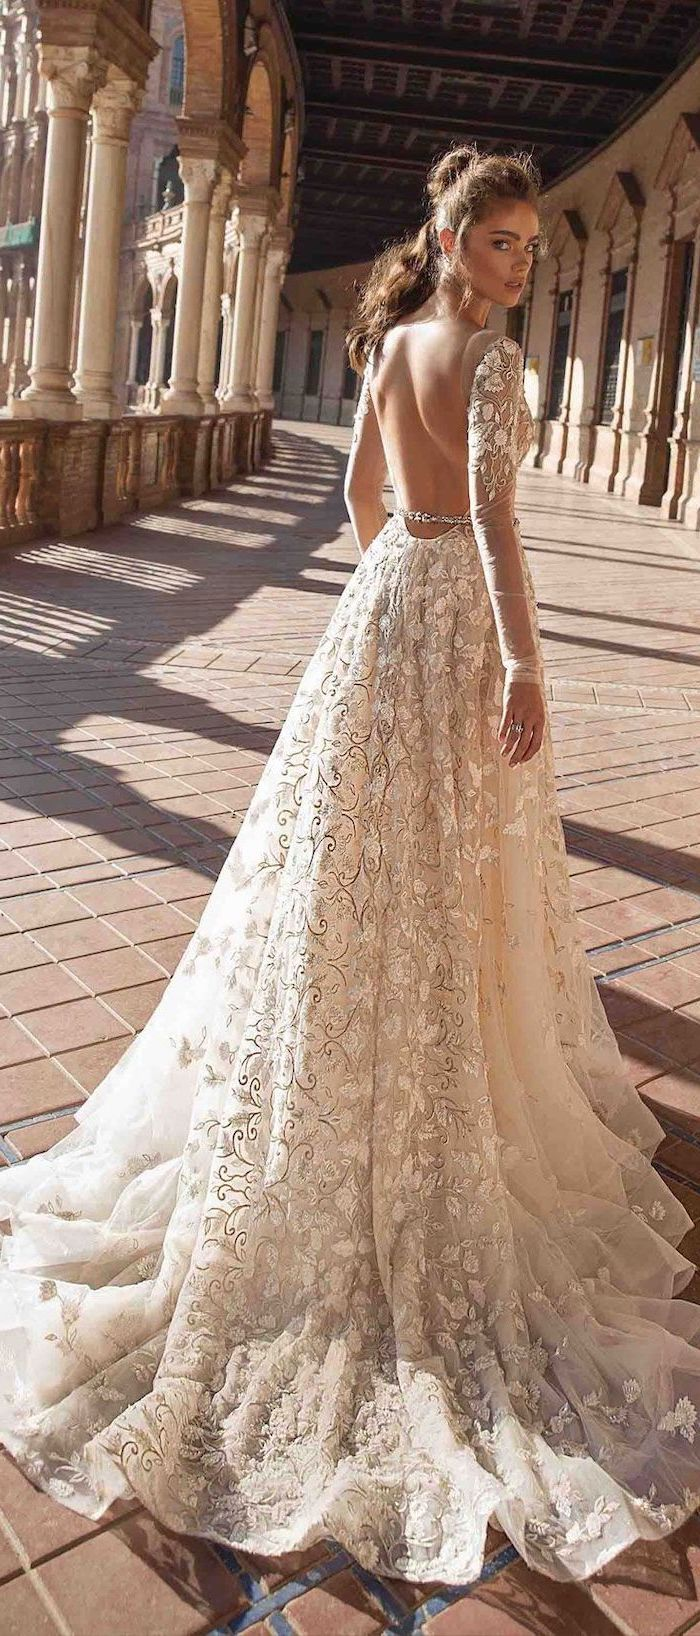 long sleeve lace mermaid wedding dress, bare back, long train, brown hair, in a ponytail